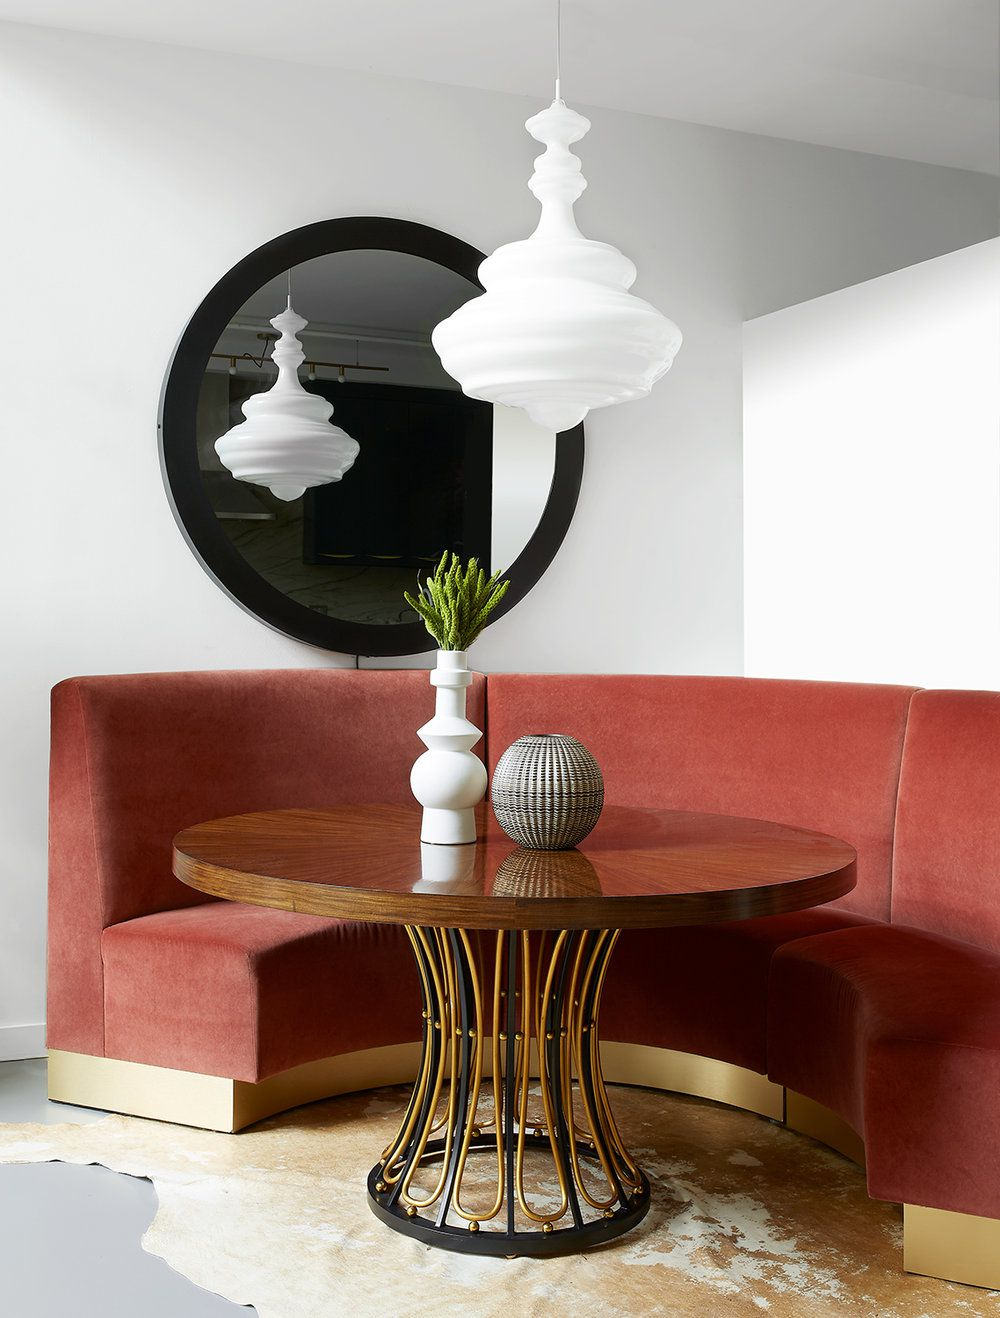 Breakfast nook features round pink booth, all-white hanging pendant light